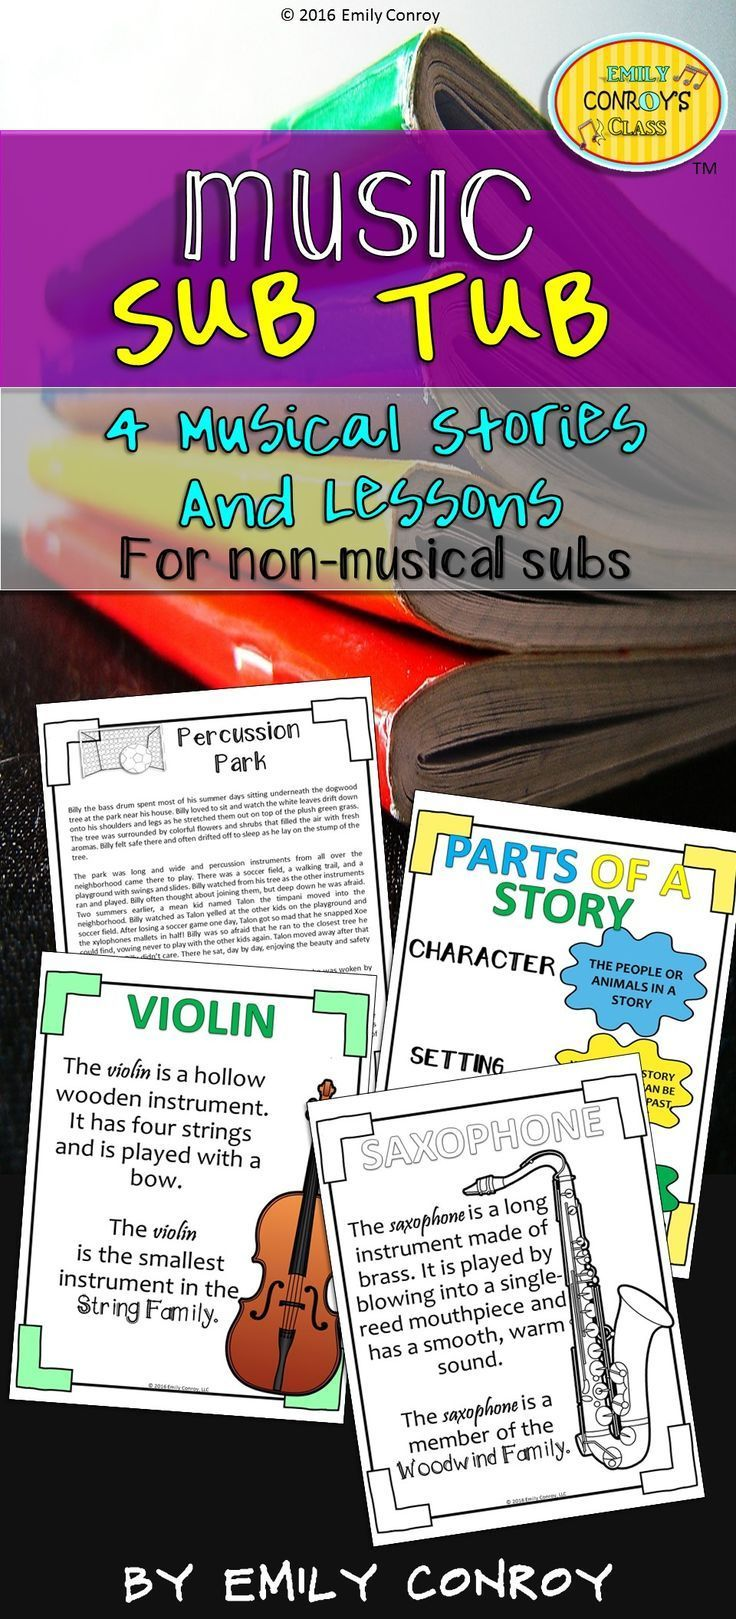 Music Sub Tub (Instrument Families of the Orchestra) contains 4 original stories and lessons about the brass, percussion, woodwind, and string families of the orchestra. These 40 minute lessons can be used by music teachers or music substitutes and is a great way to integrate literacy into the music classroom!